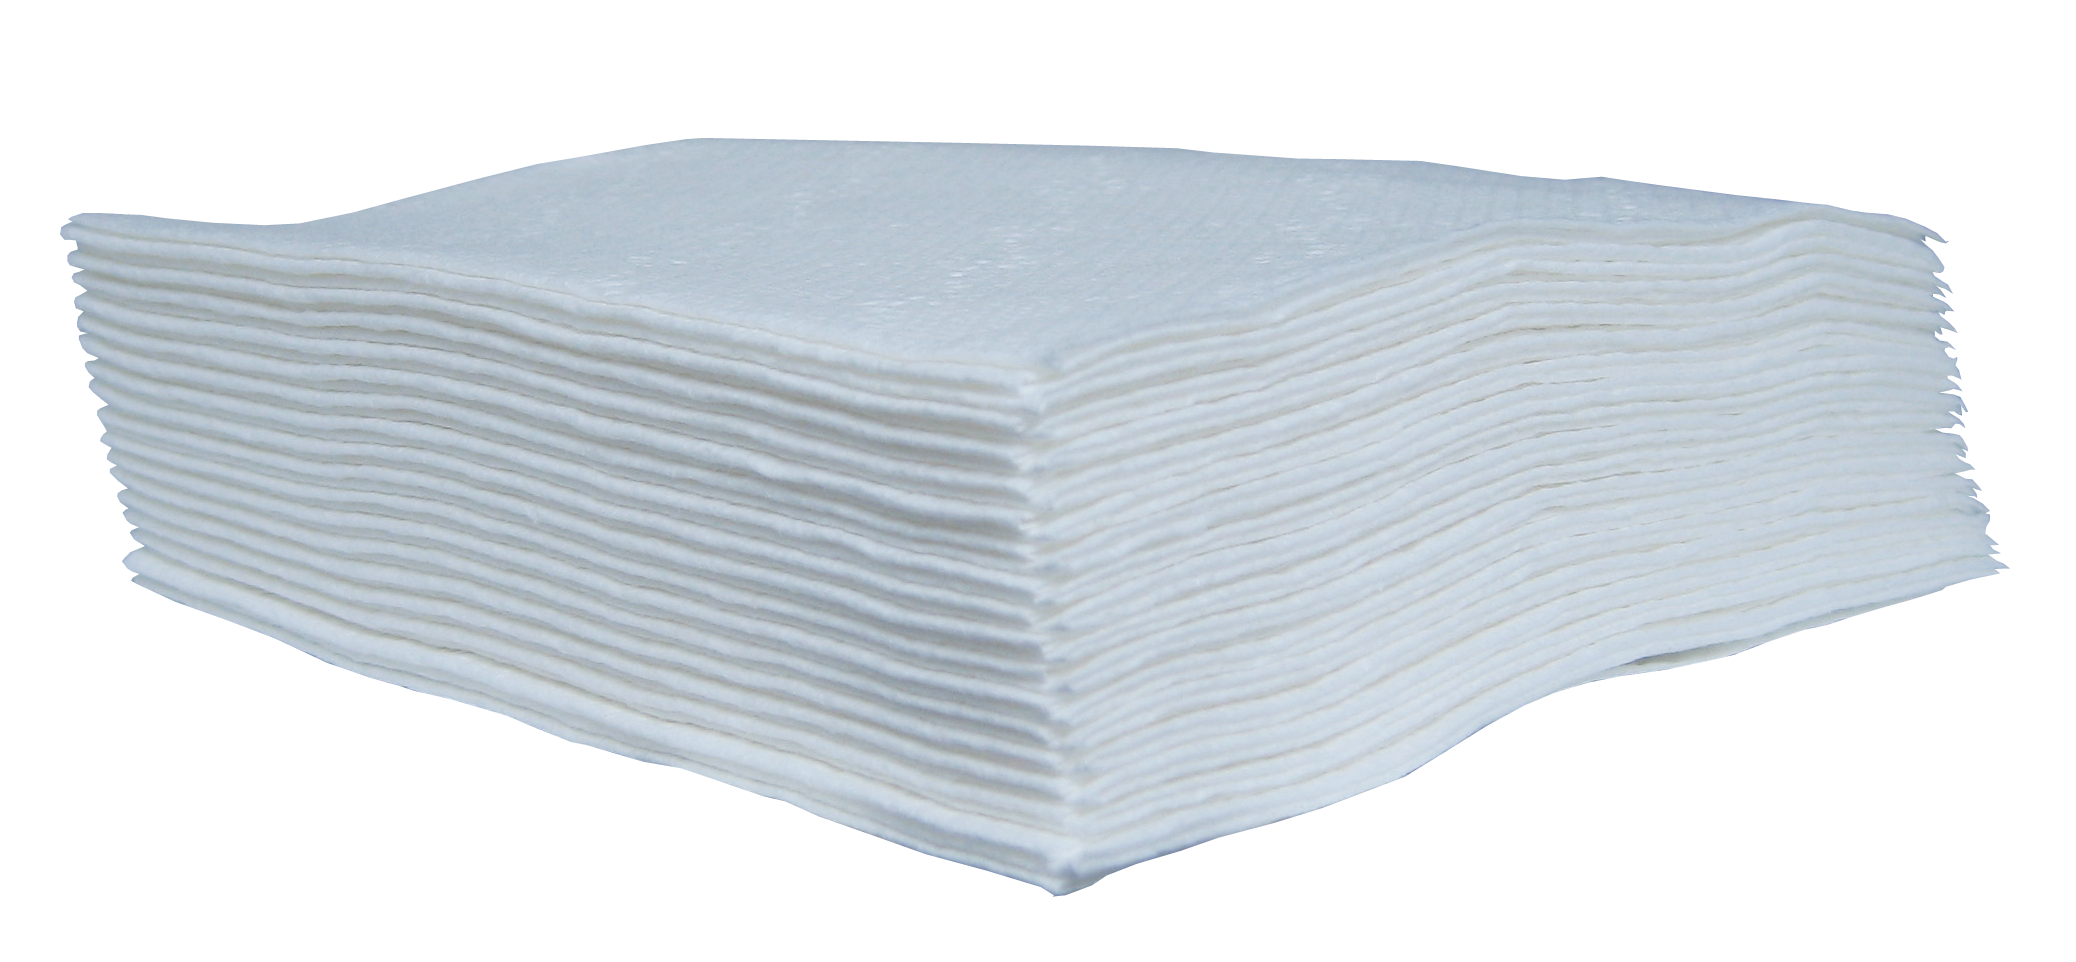 File:Napkins - isolated.png - Paper Napkin PNG